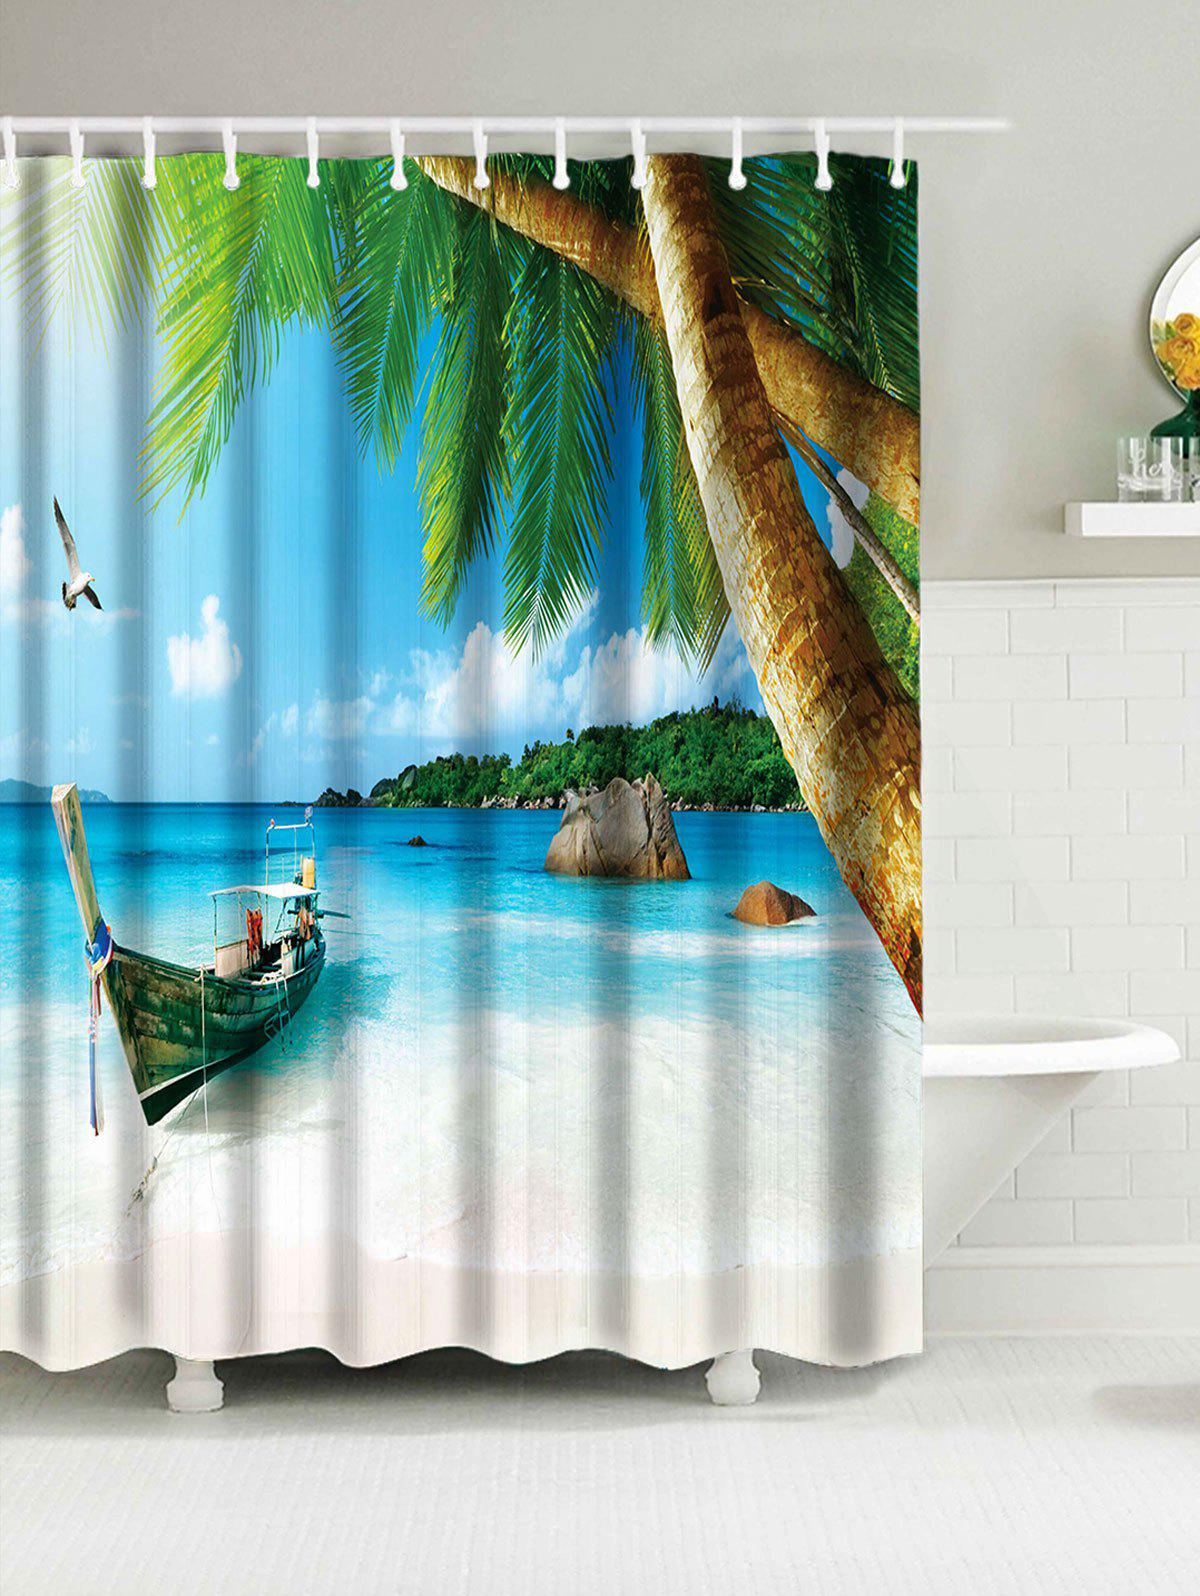 Hawaii Beach Print Waterproof Bathroom Shower Curtain merry christmas waterproof shower curtain bathroom decoration